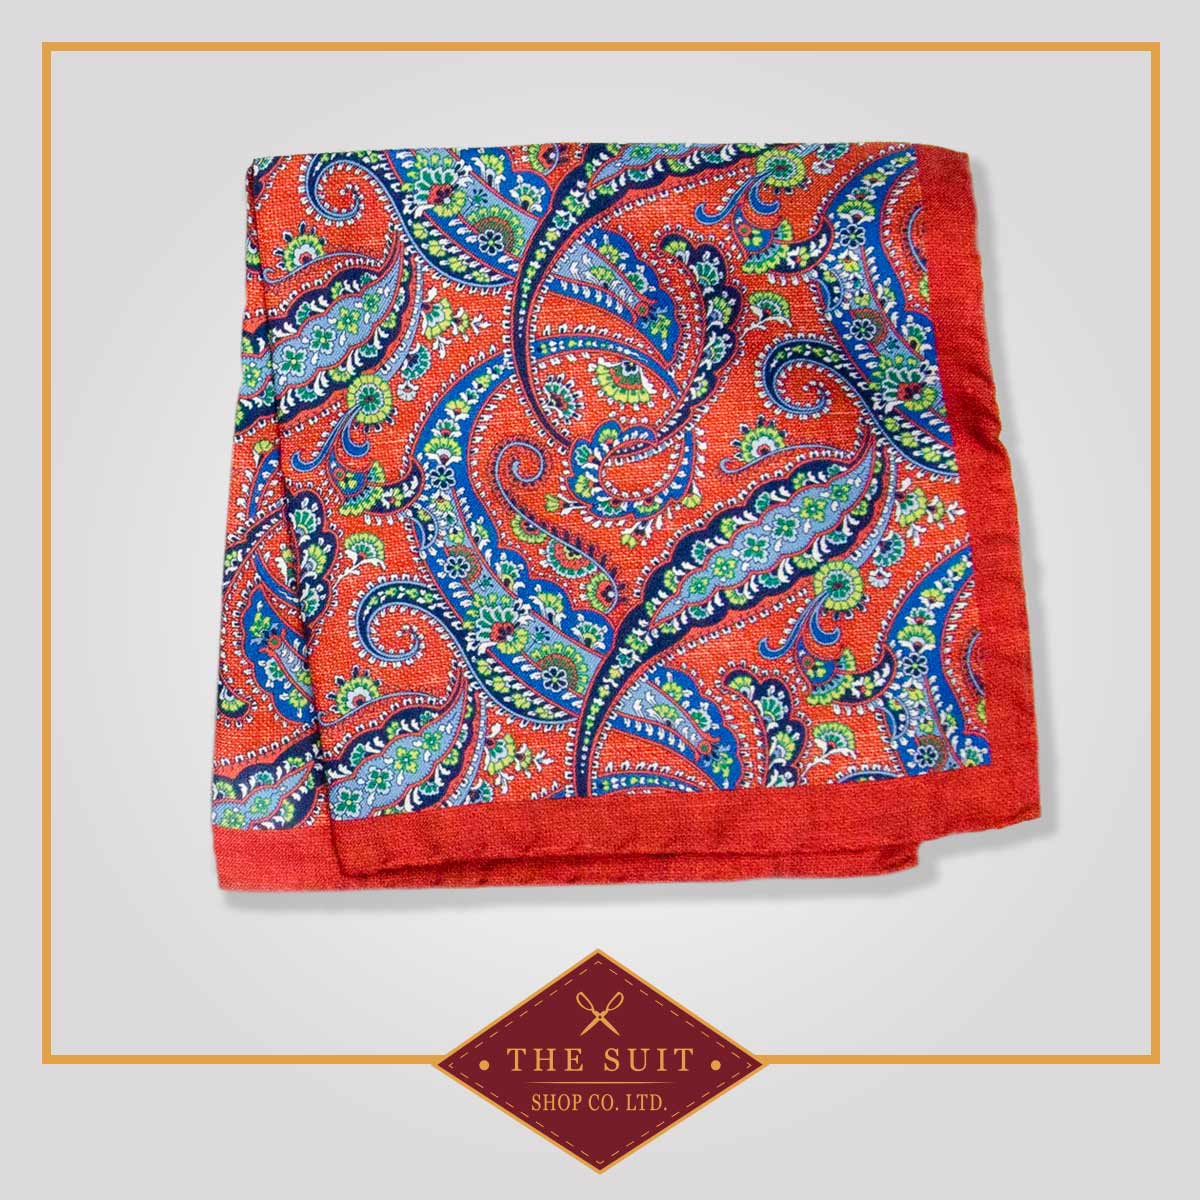 Milano Red and Polo Blue Paisley Patterned Pocket Square